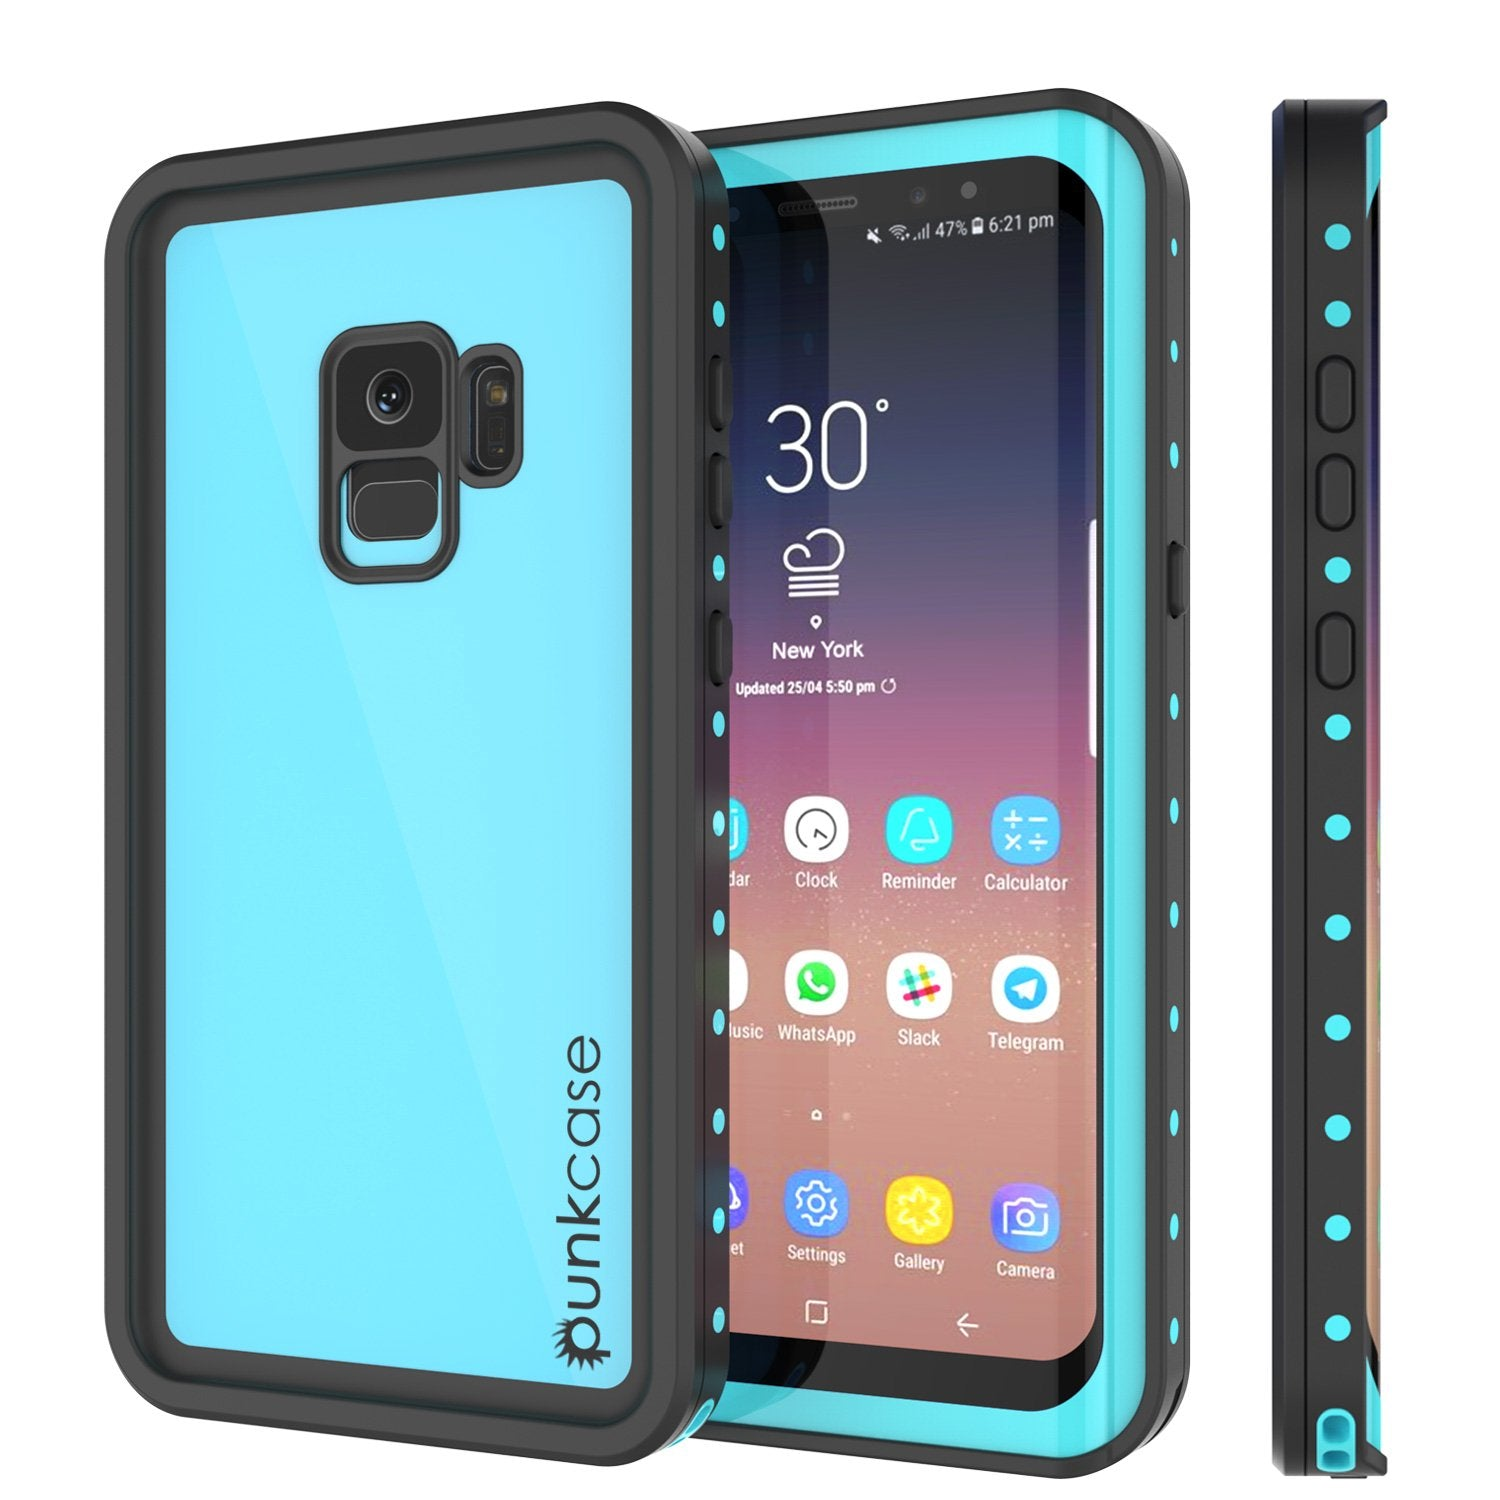 Galaxy S9 Waterproof Case PunkCase StudStar Teal Thin 6.6ft Underwater IP68 Shock/Snow Proof - PunkCase NZ